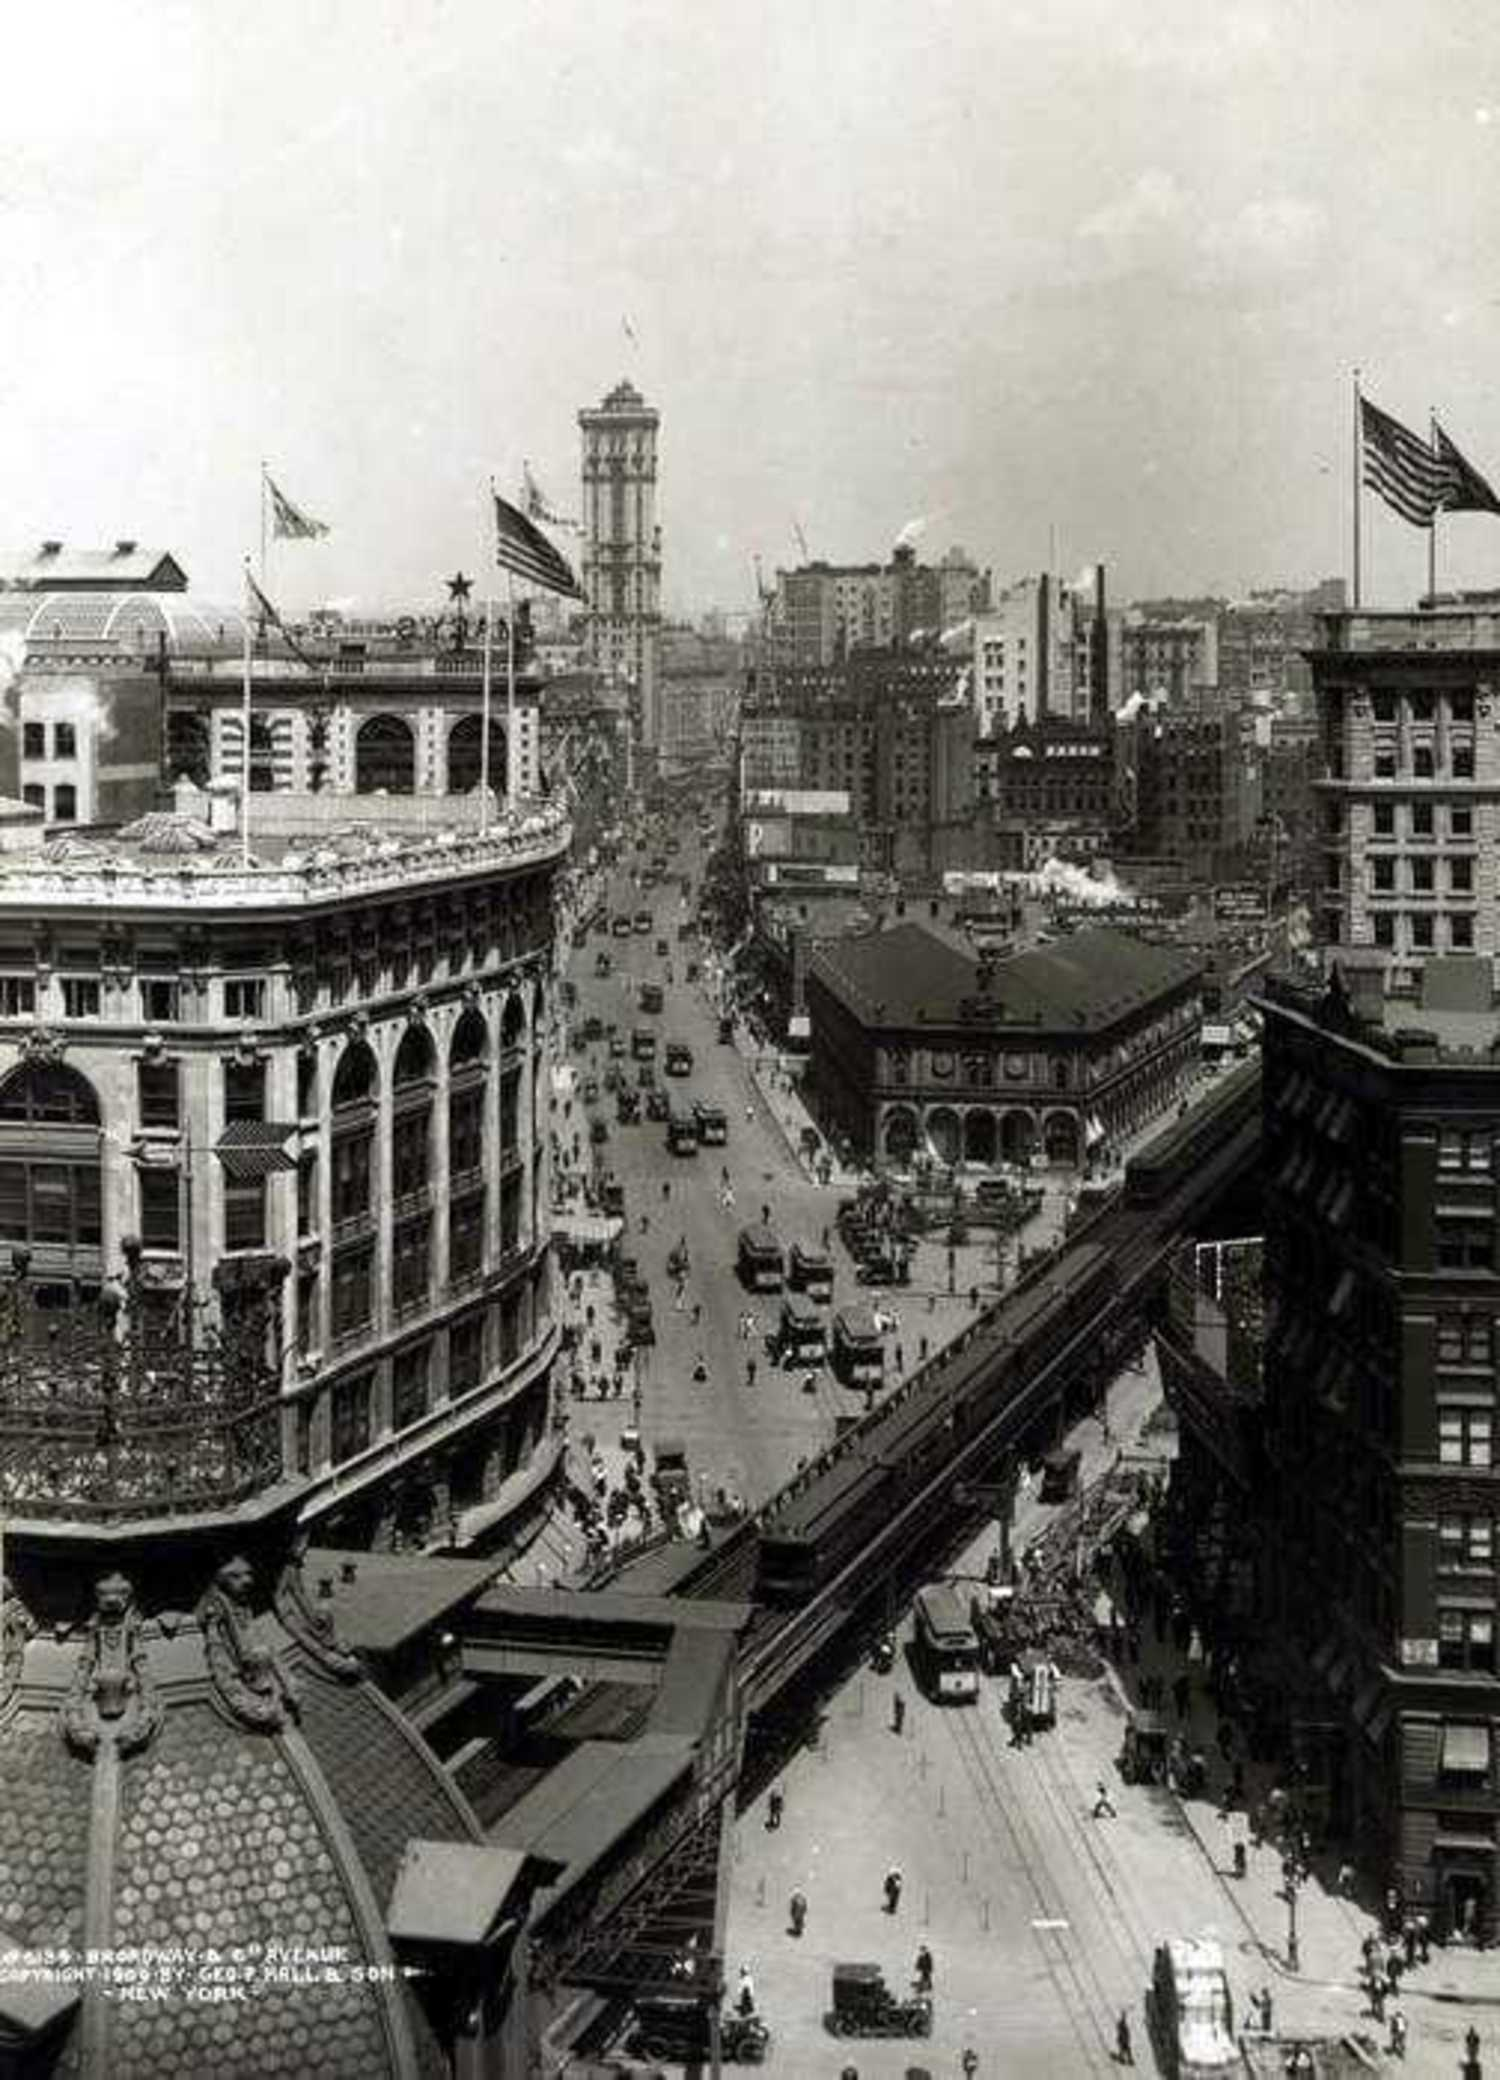 New York City, Herald Square NY Times Building 1909